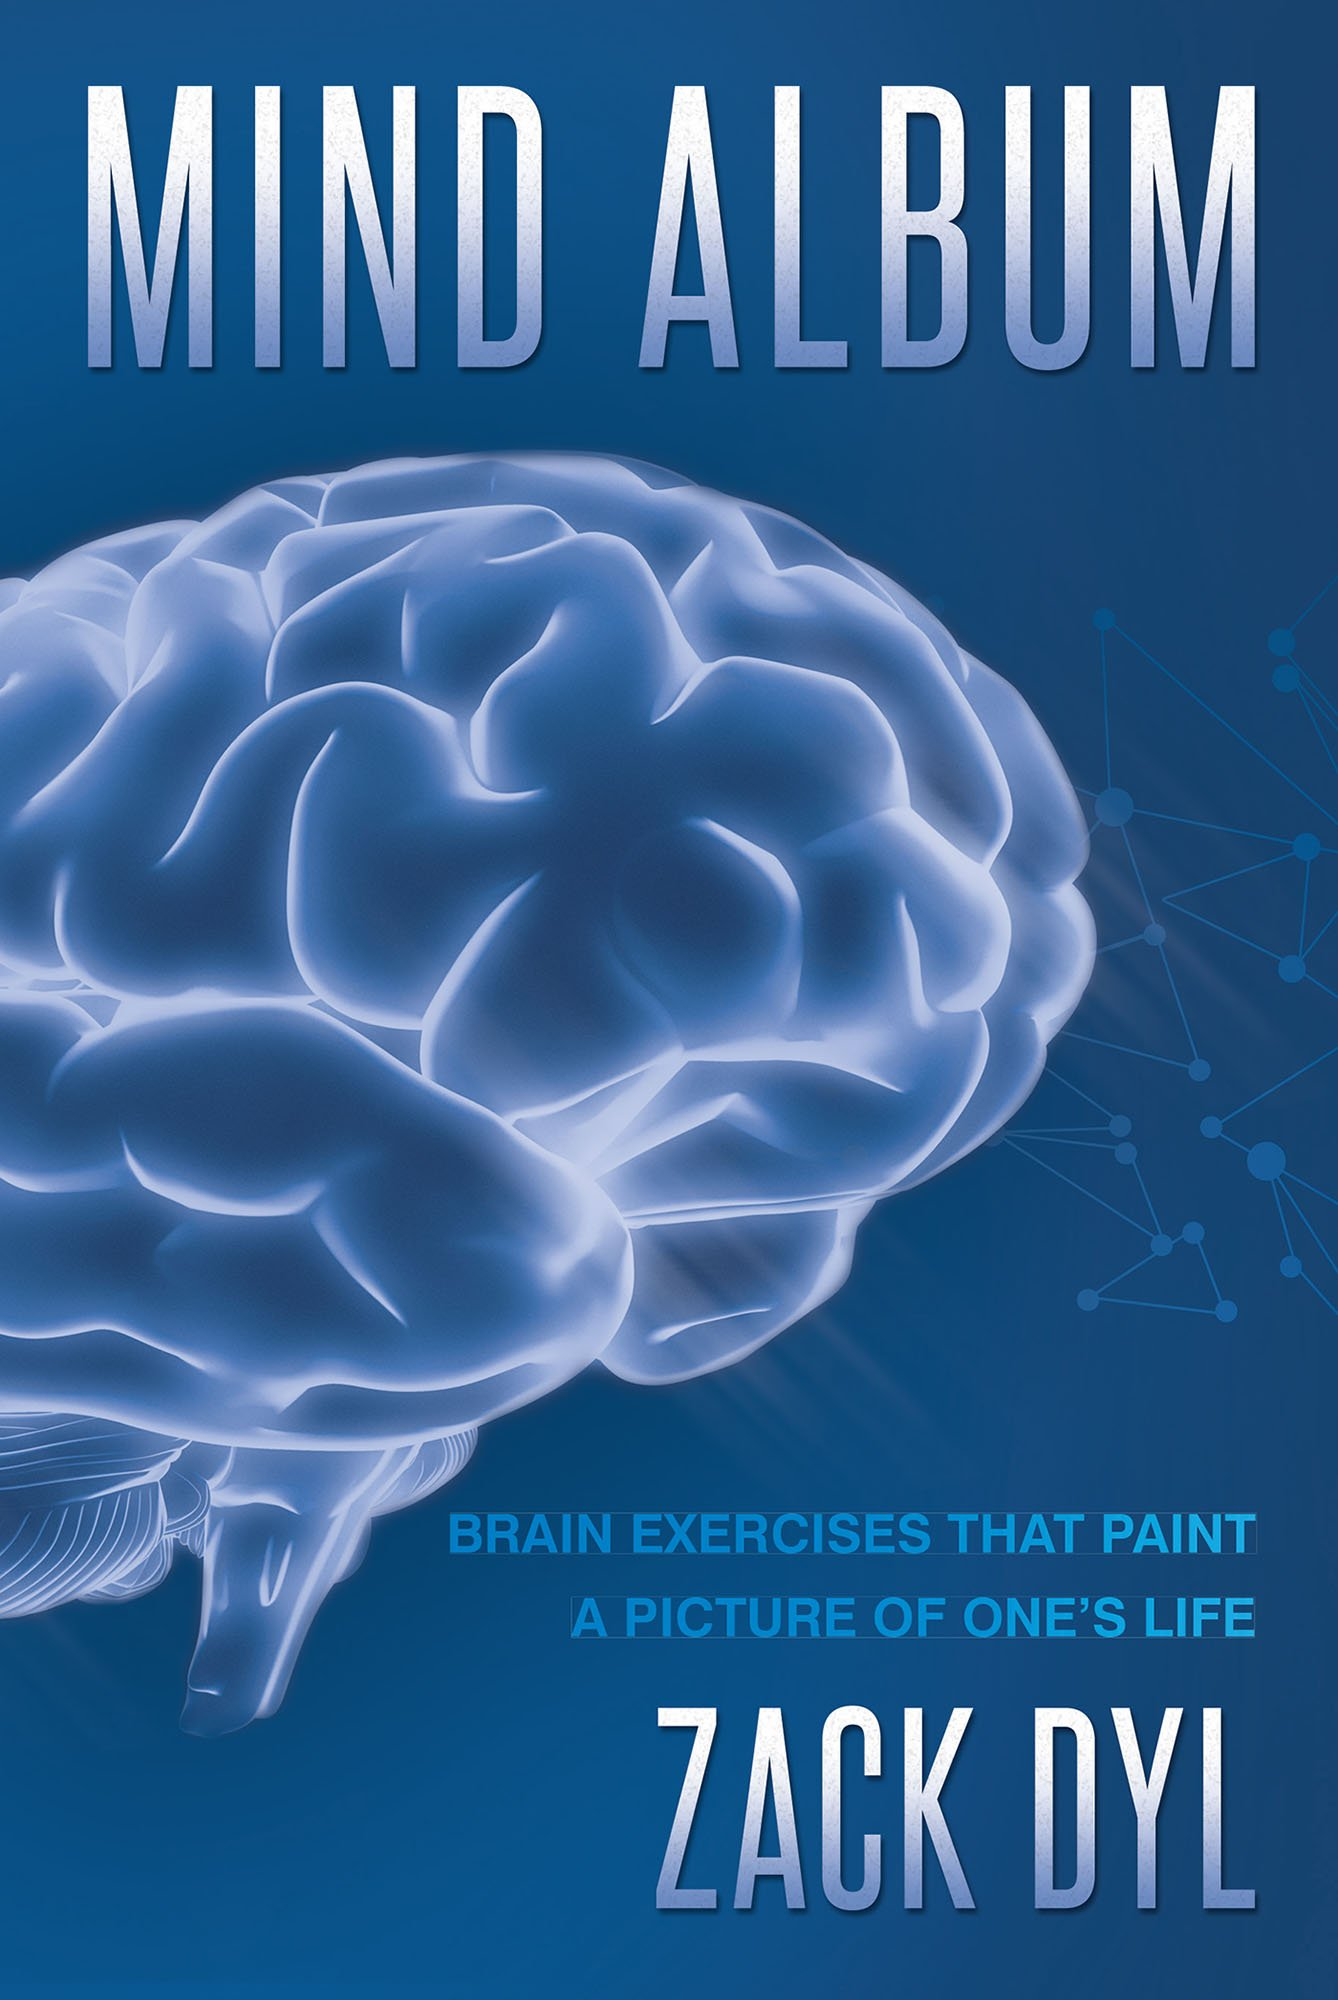 """Zack Dyl's New Book """"Mind Album: Brain Exercises That Paint a Picture of One's Life"""" is a Guided Workout for the Mind That Improves Brain Health and Awareness."""